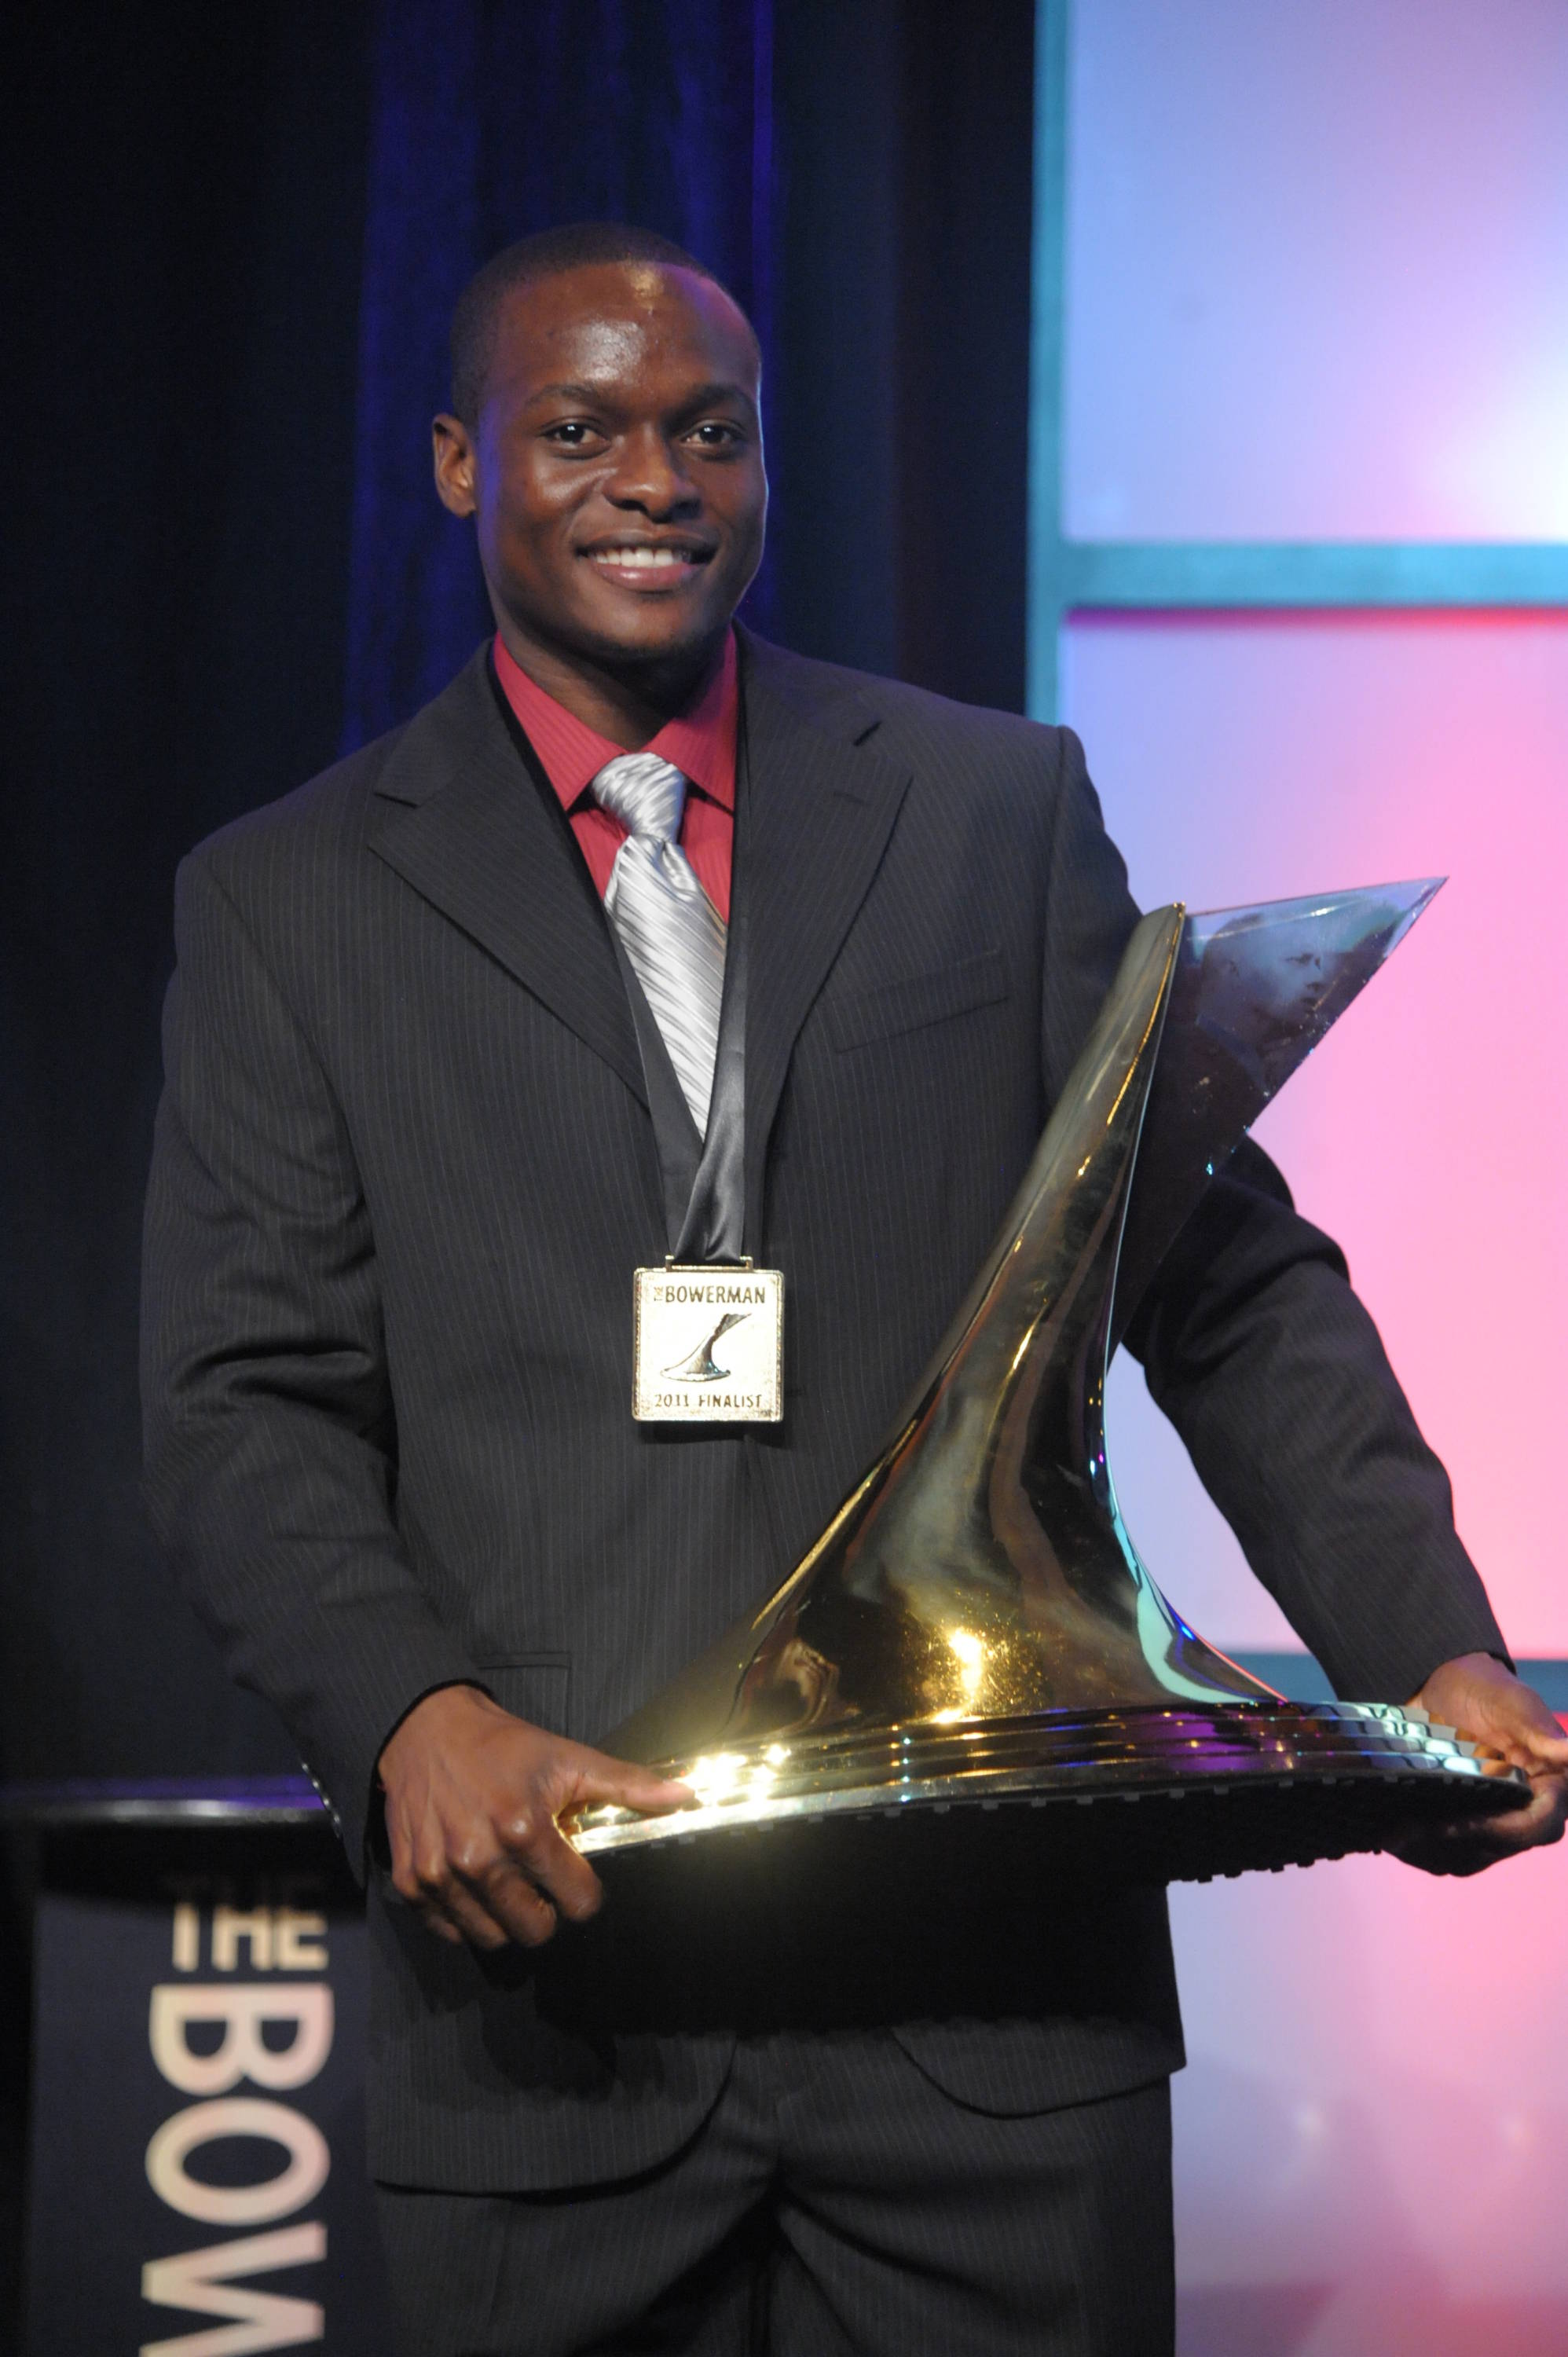 Makusha's smile was as unforgettable as his moving acceptance speech, which made for a pride night for all Seminoles!